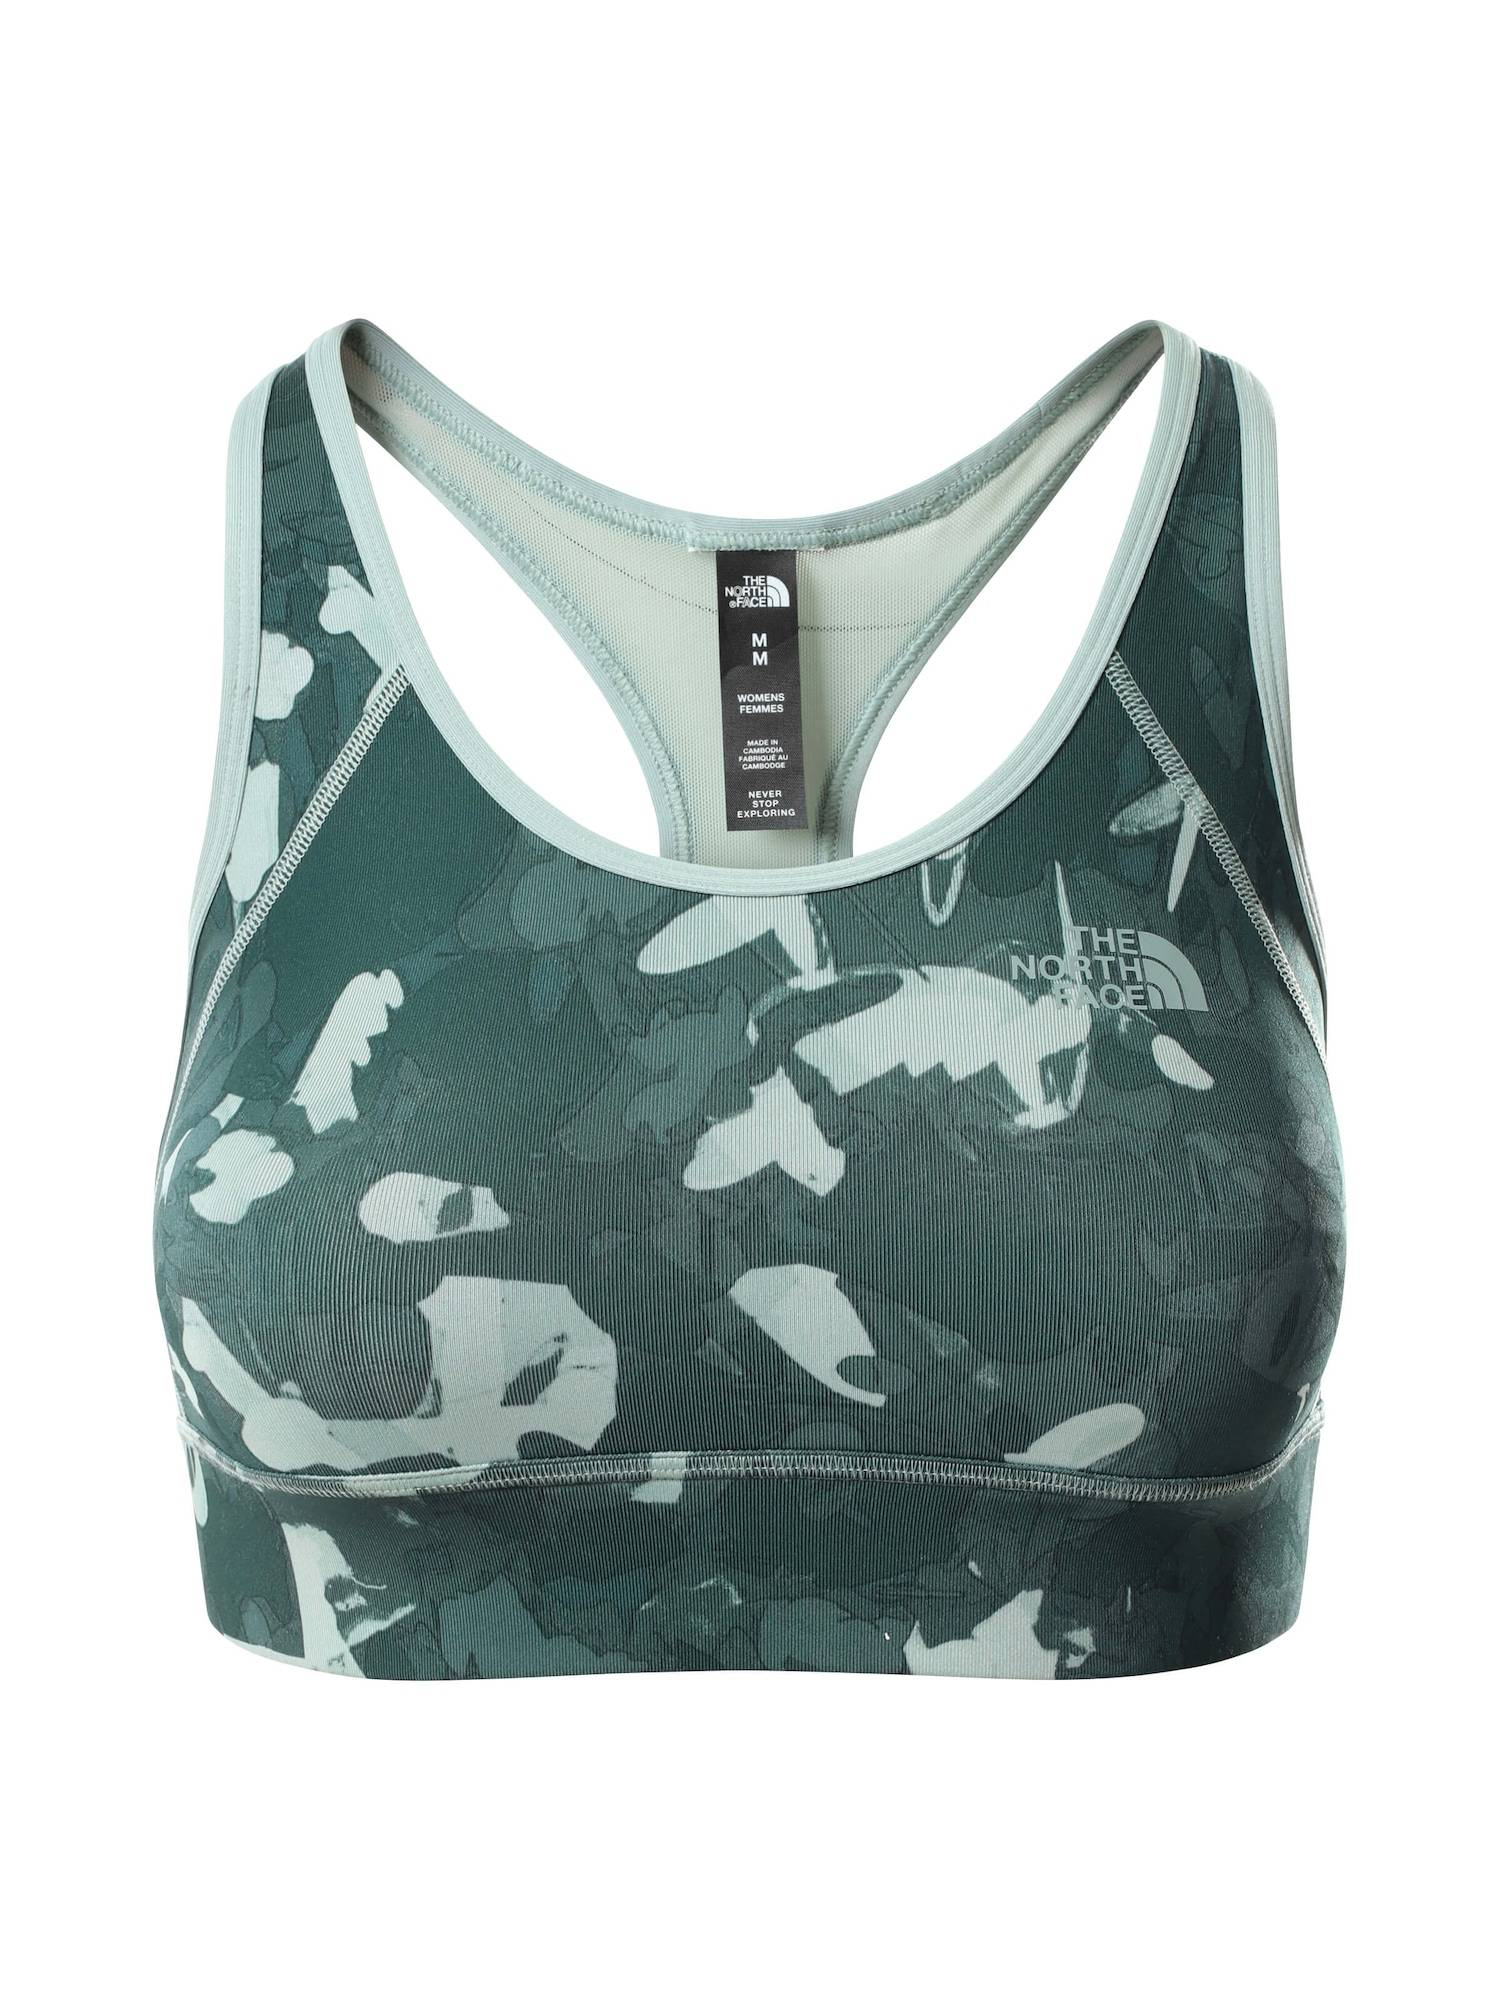 THE NORTH FACE Soutien-gorge  - Vert - Taille: 90 - female